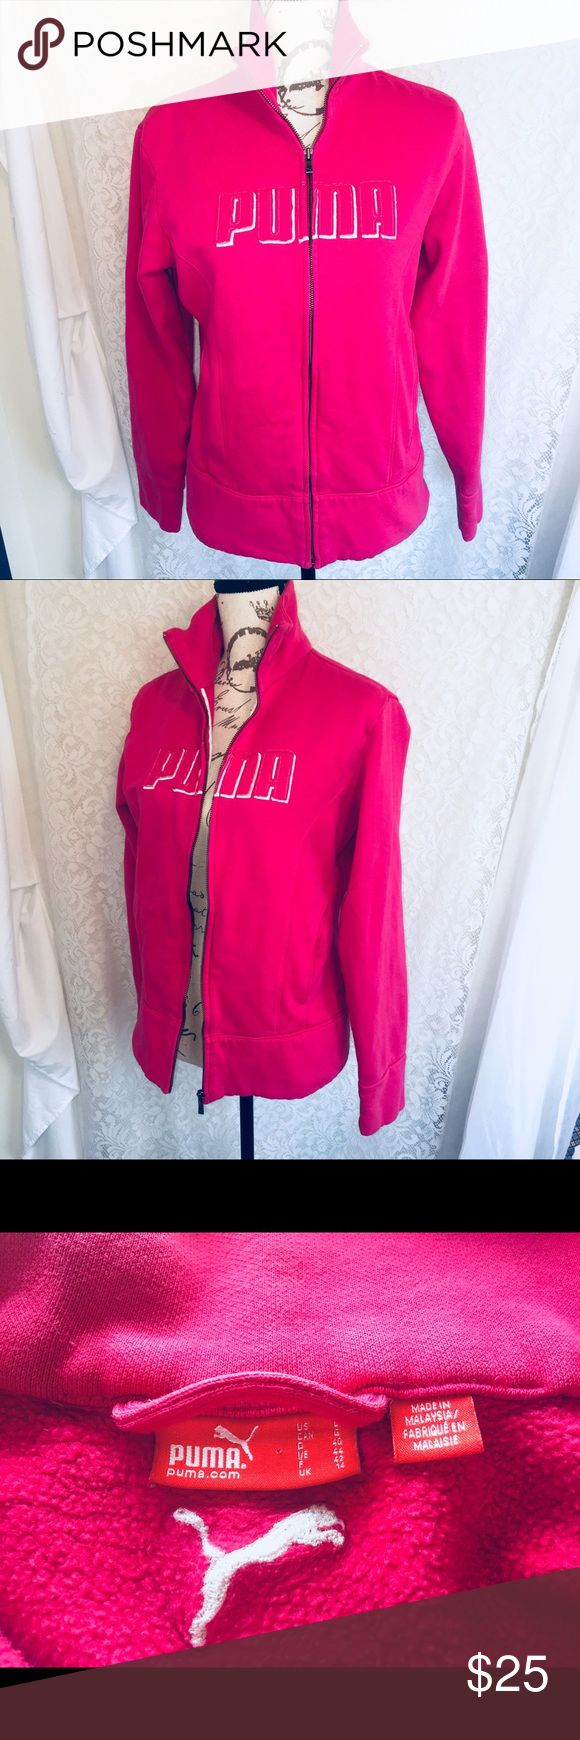 "Puma sweatshirt size large Awesome pink  women's Puma Sweatshirt in a size Large with the length at 24"".  Very pretty bright pink.  Zip up sweatshirt 🌸🌸🌸 Tops Sweatshirts & Hoodies"